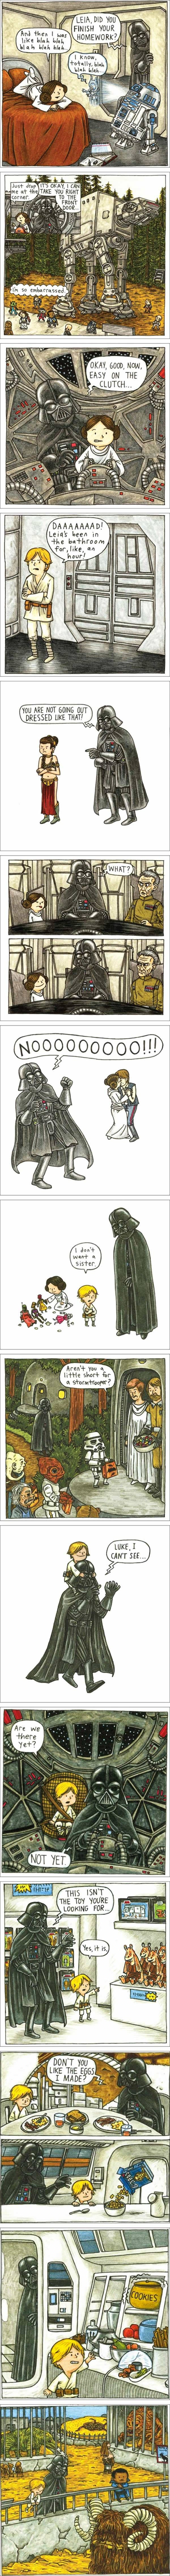 If Darth Vader Was a Good Father